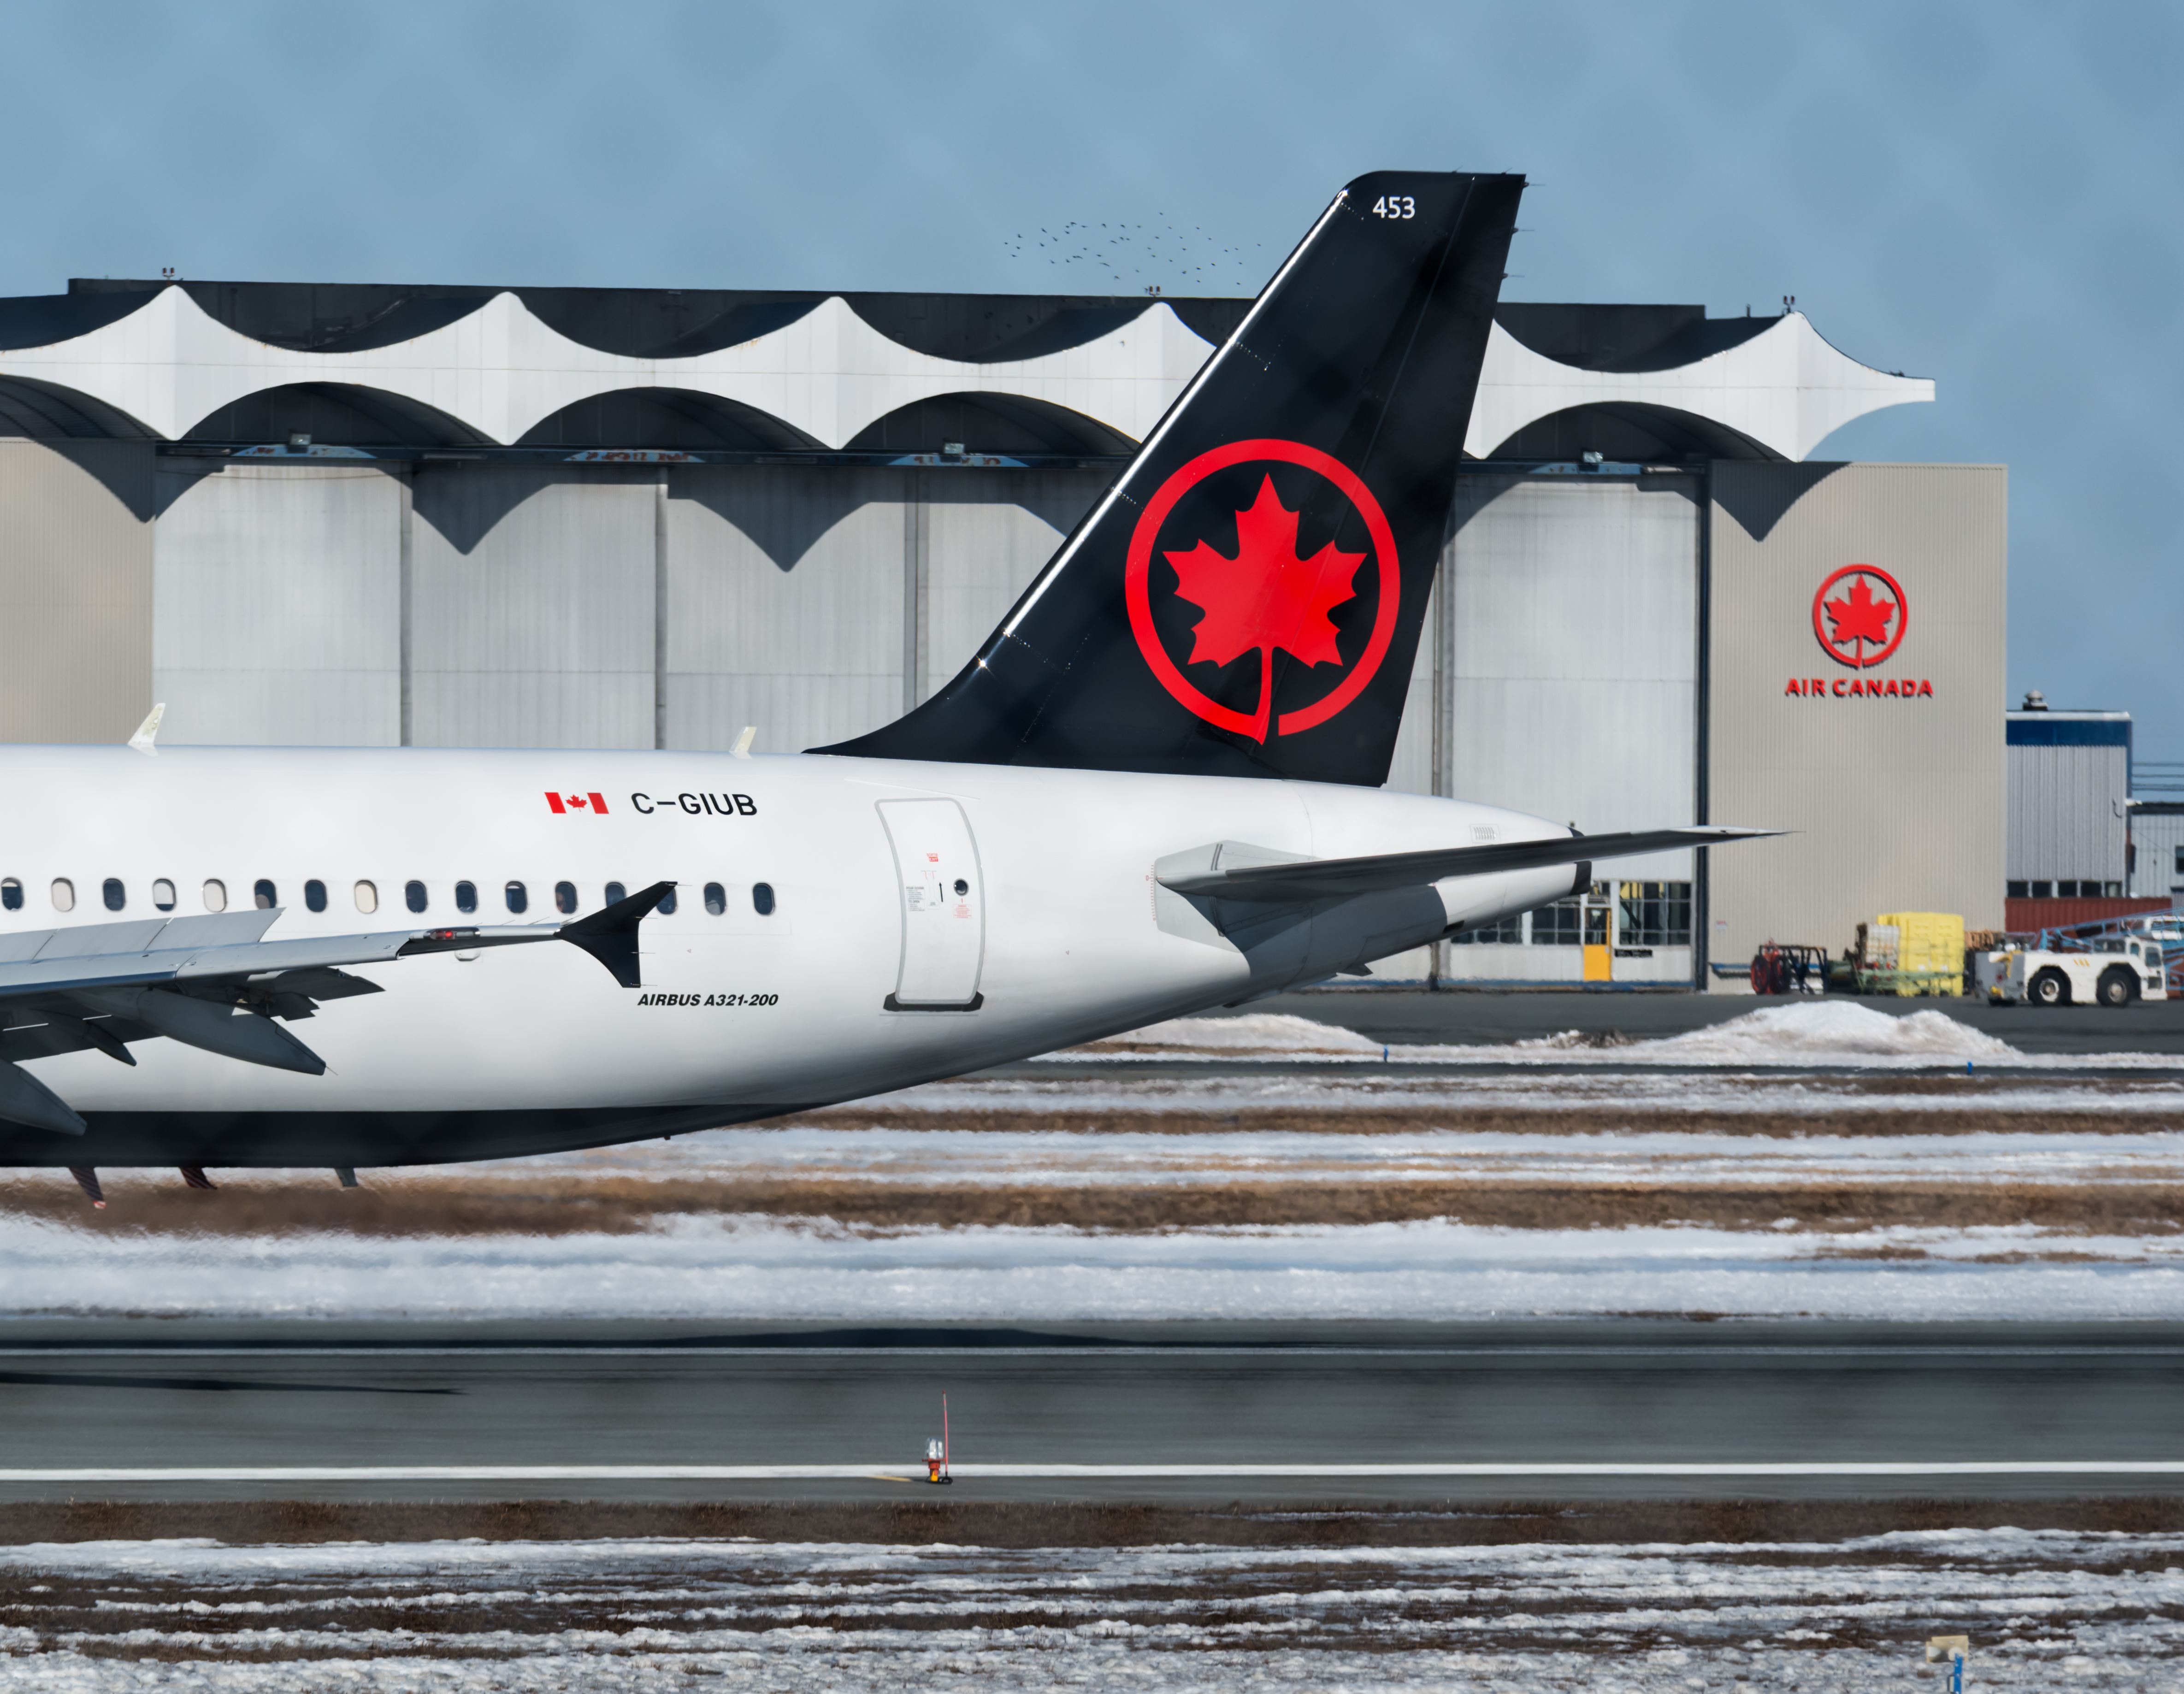 """Air Canada axes """"ladies and gentlemen"""" for more inclusive language"""